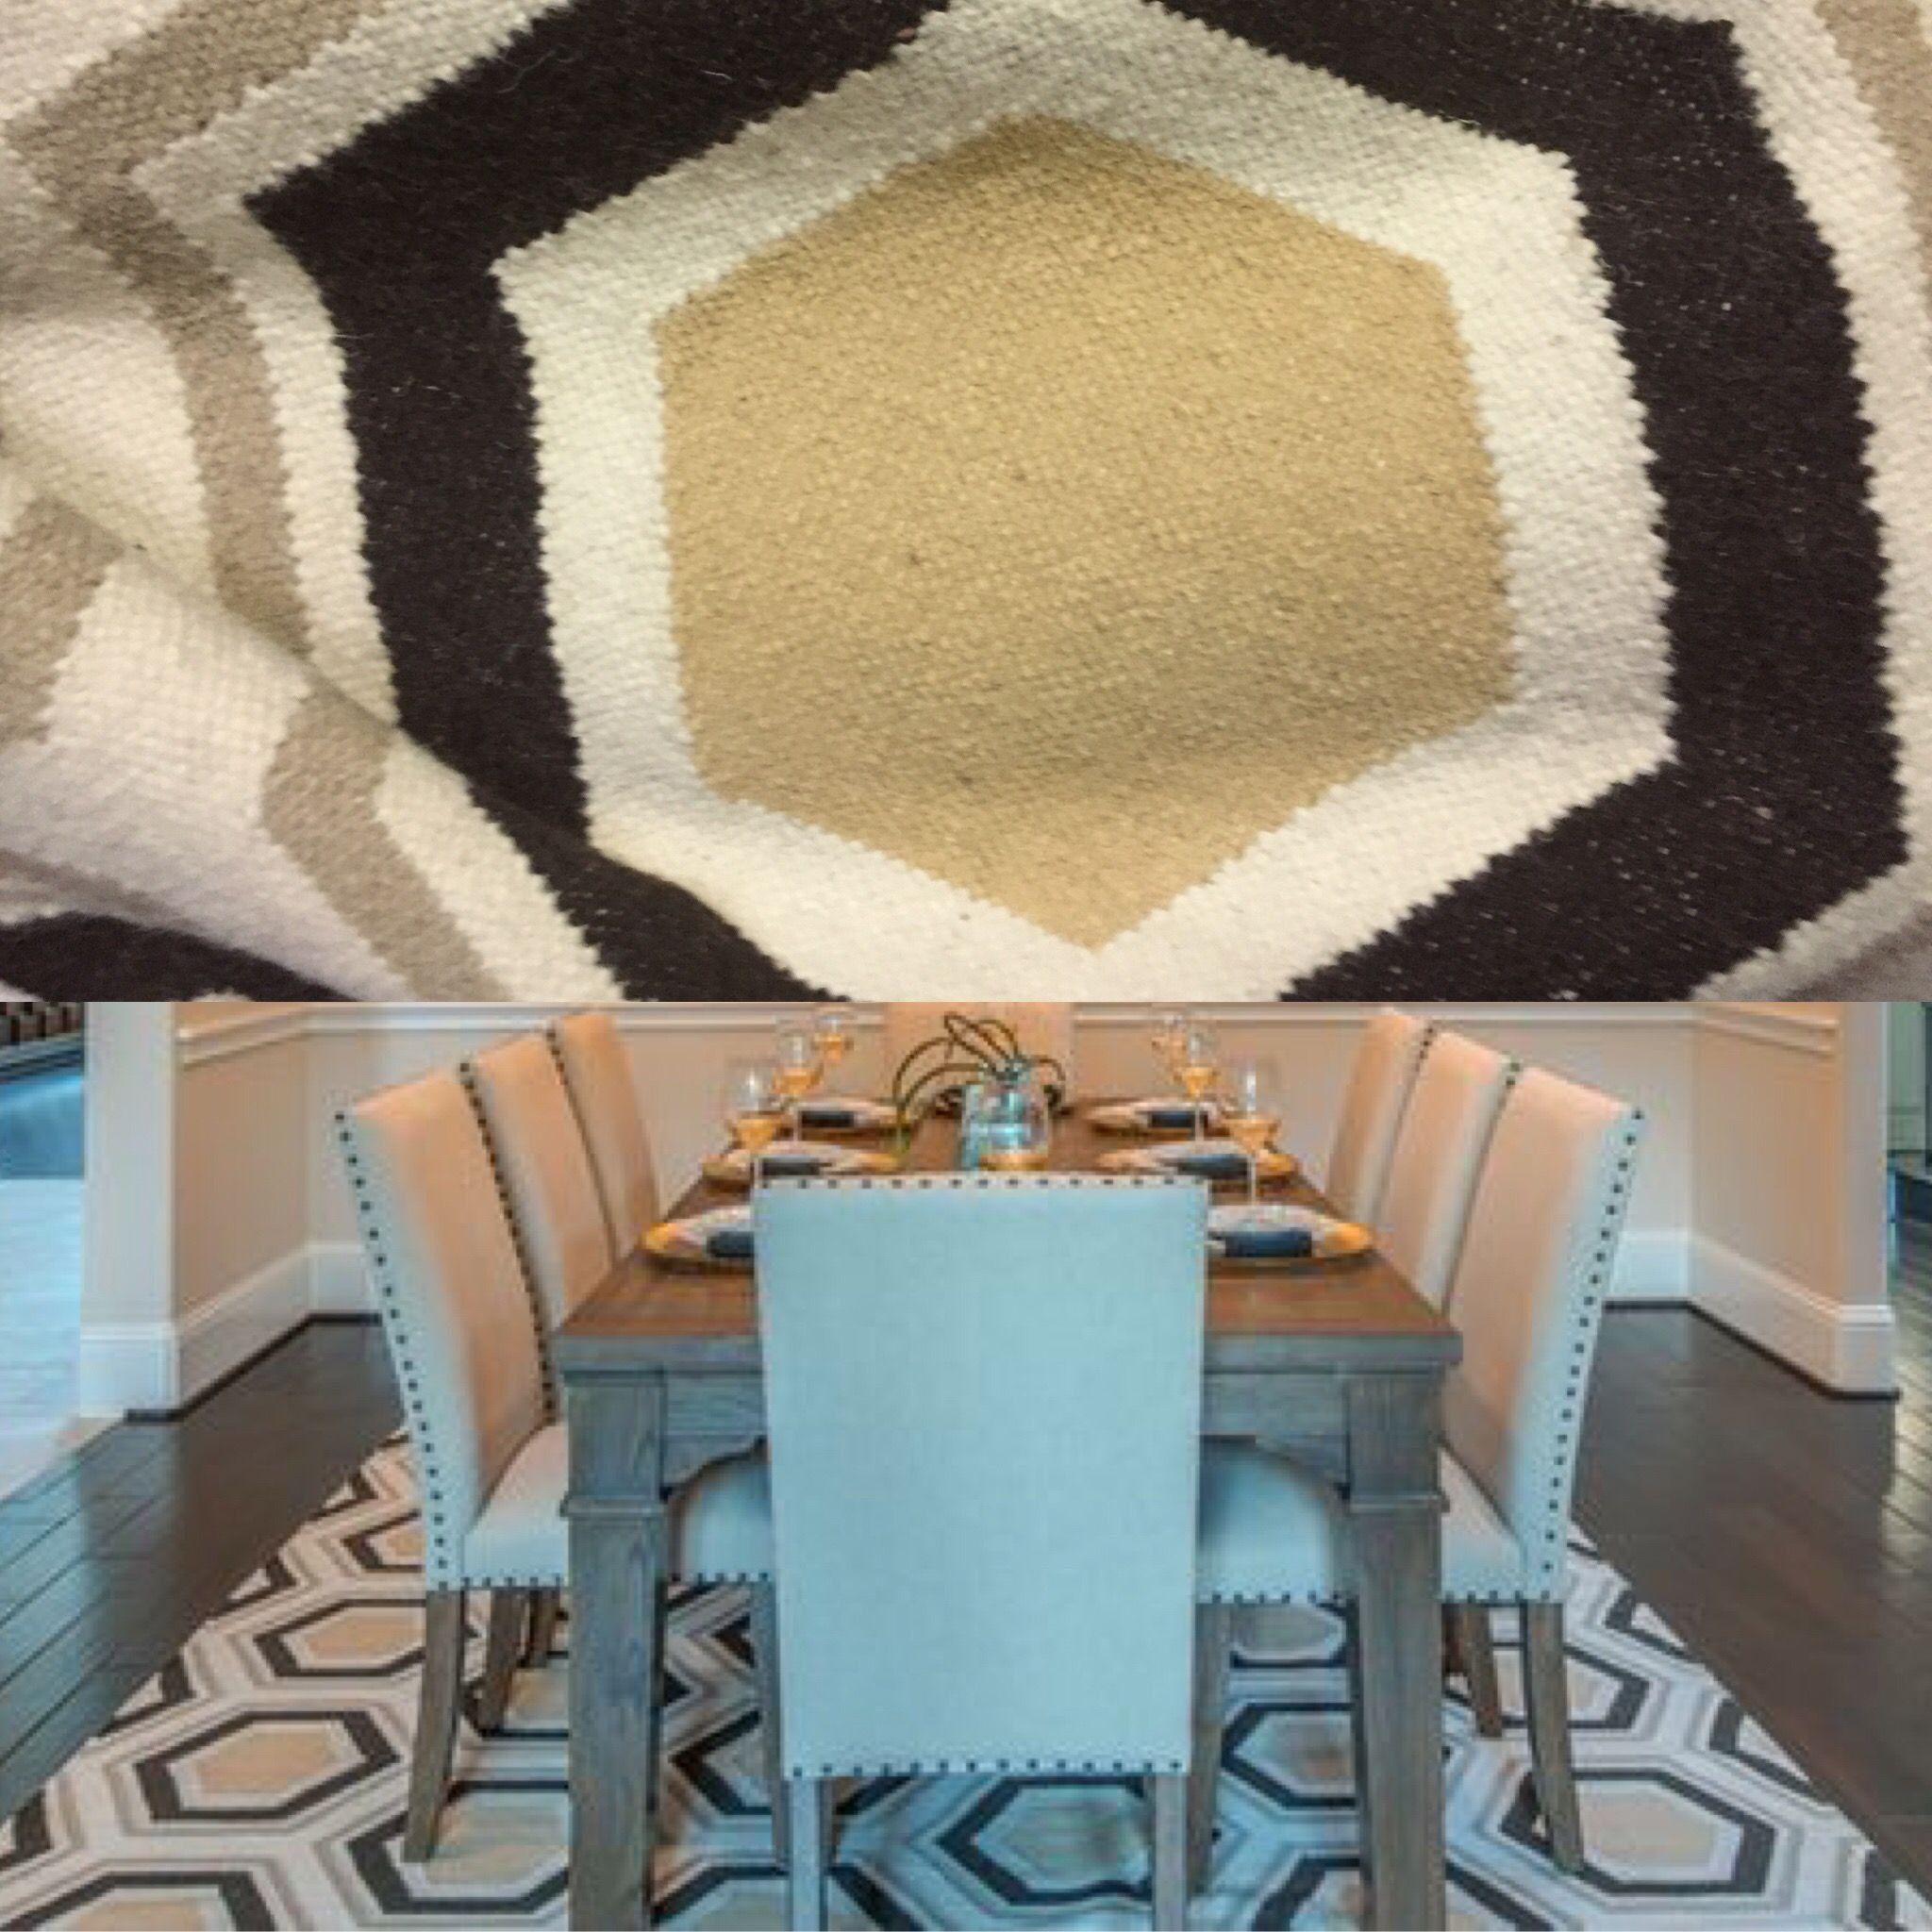 Stg0282 Brown Ivory Cream Octagon Rug Octagon Rugs Contemporary Rug Rugs